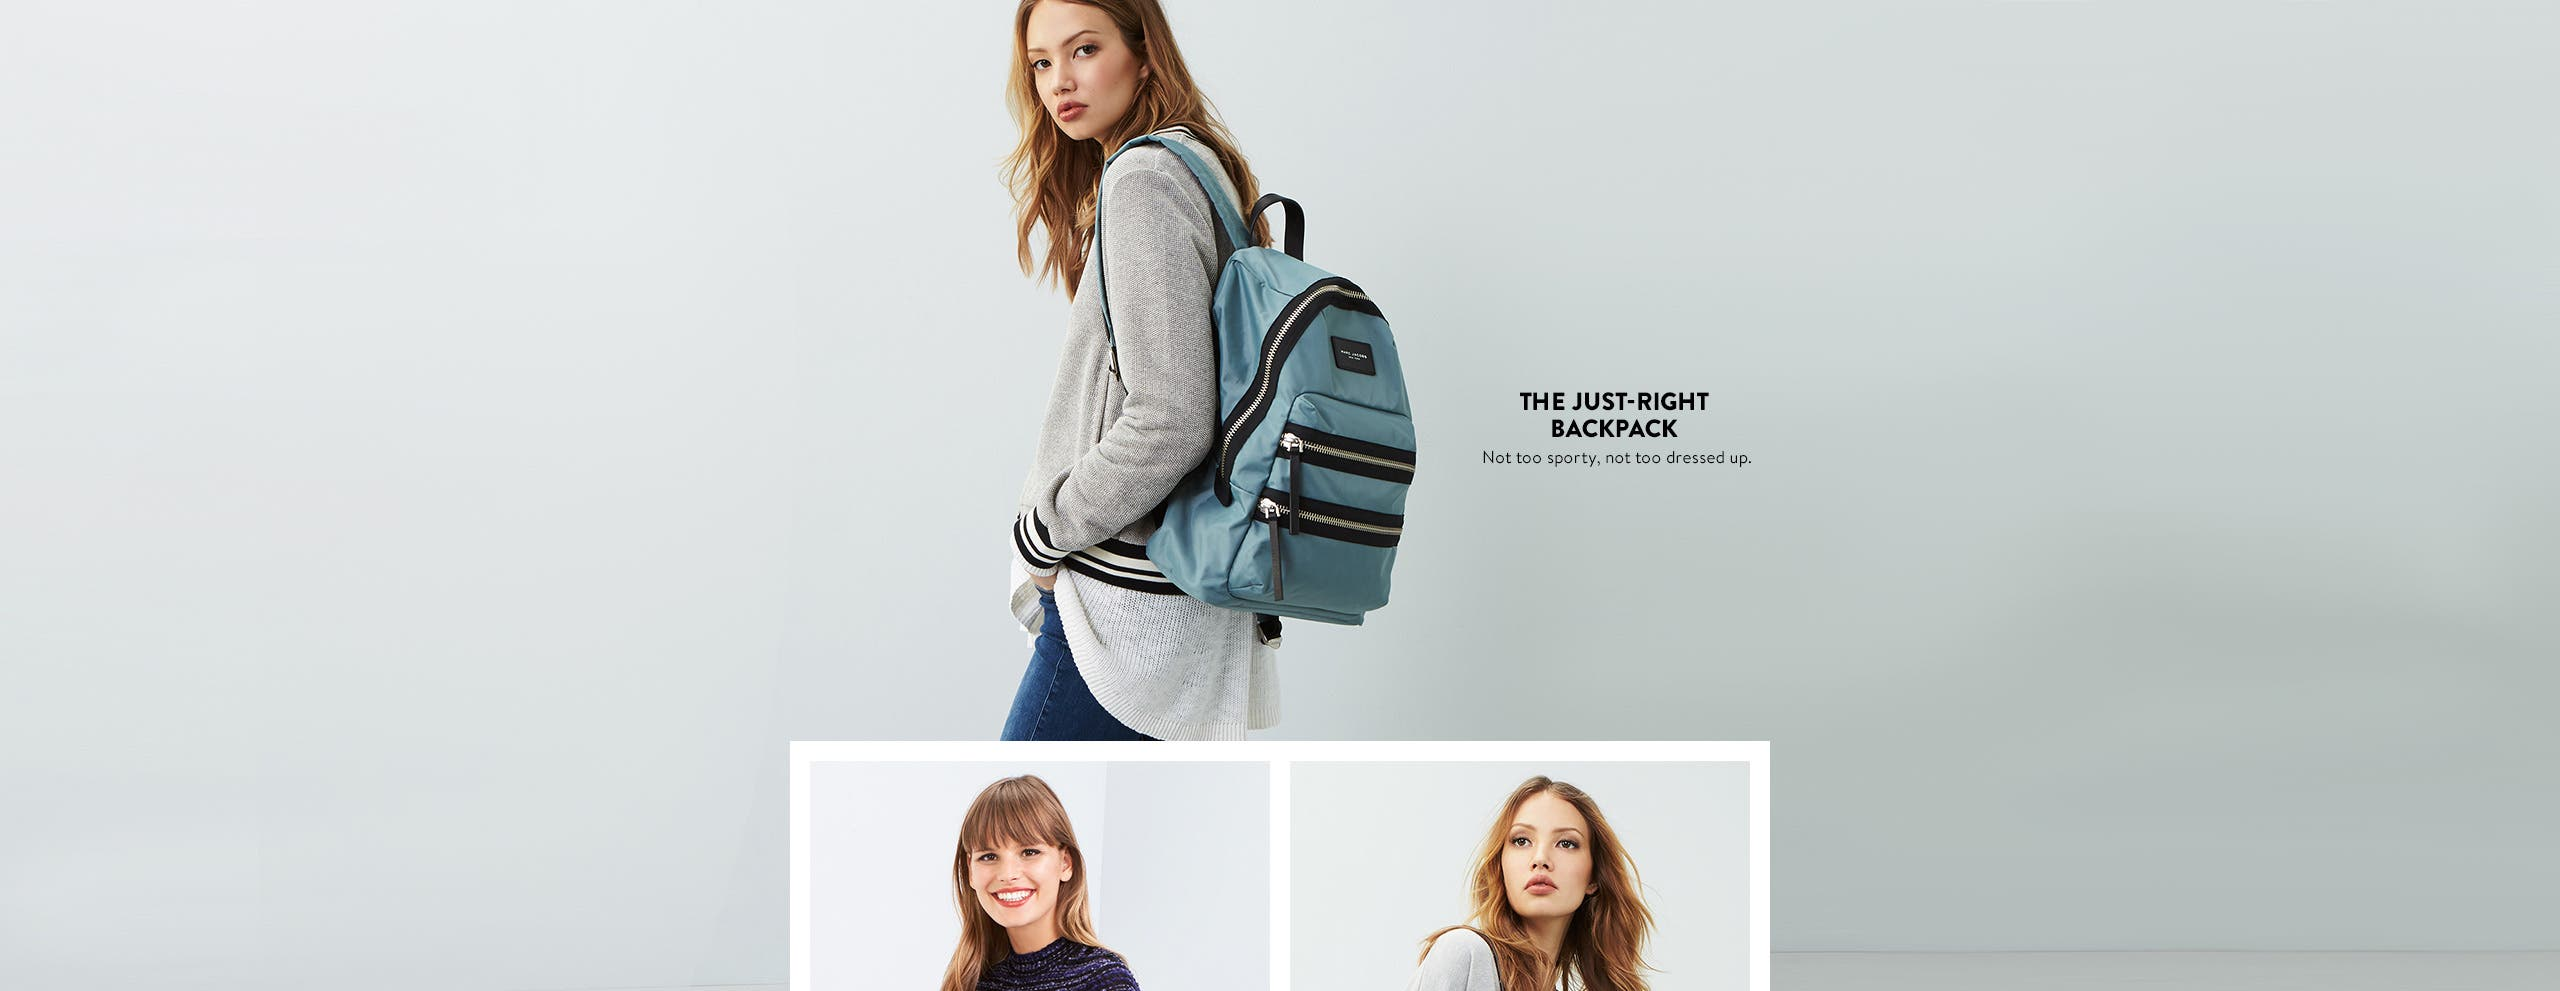 Just-right backpacks for athleisure days.